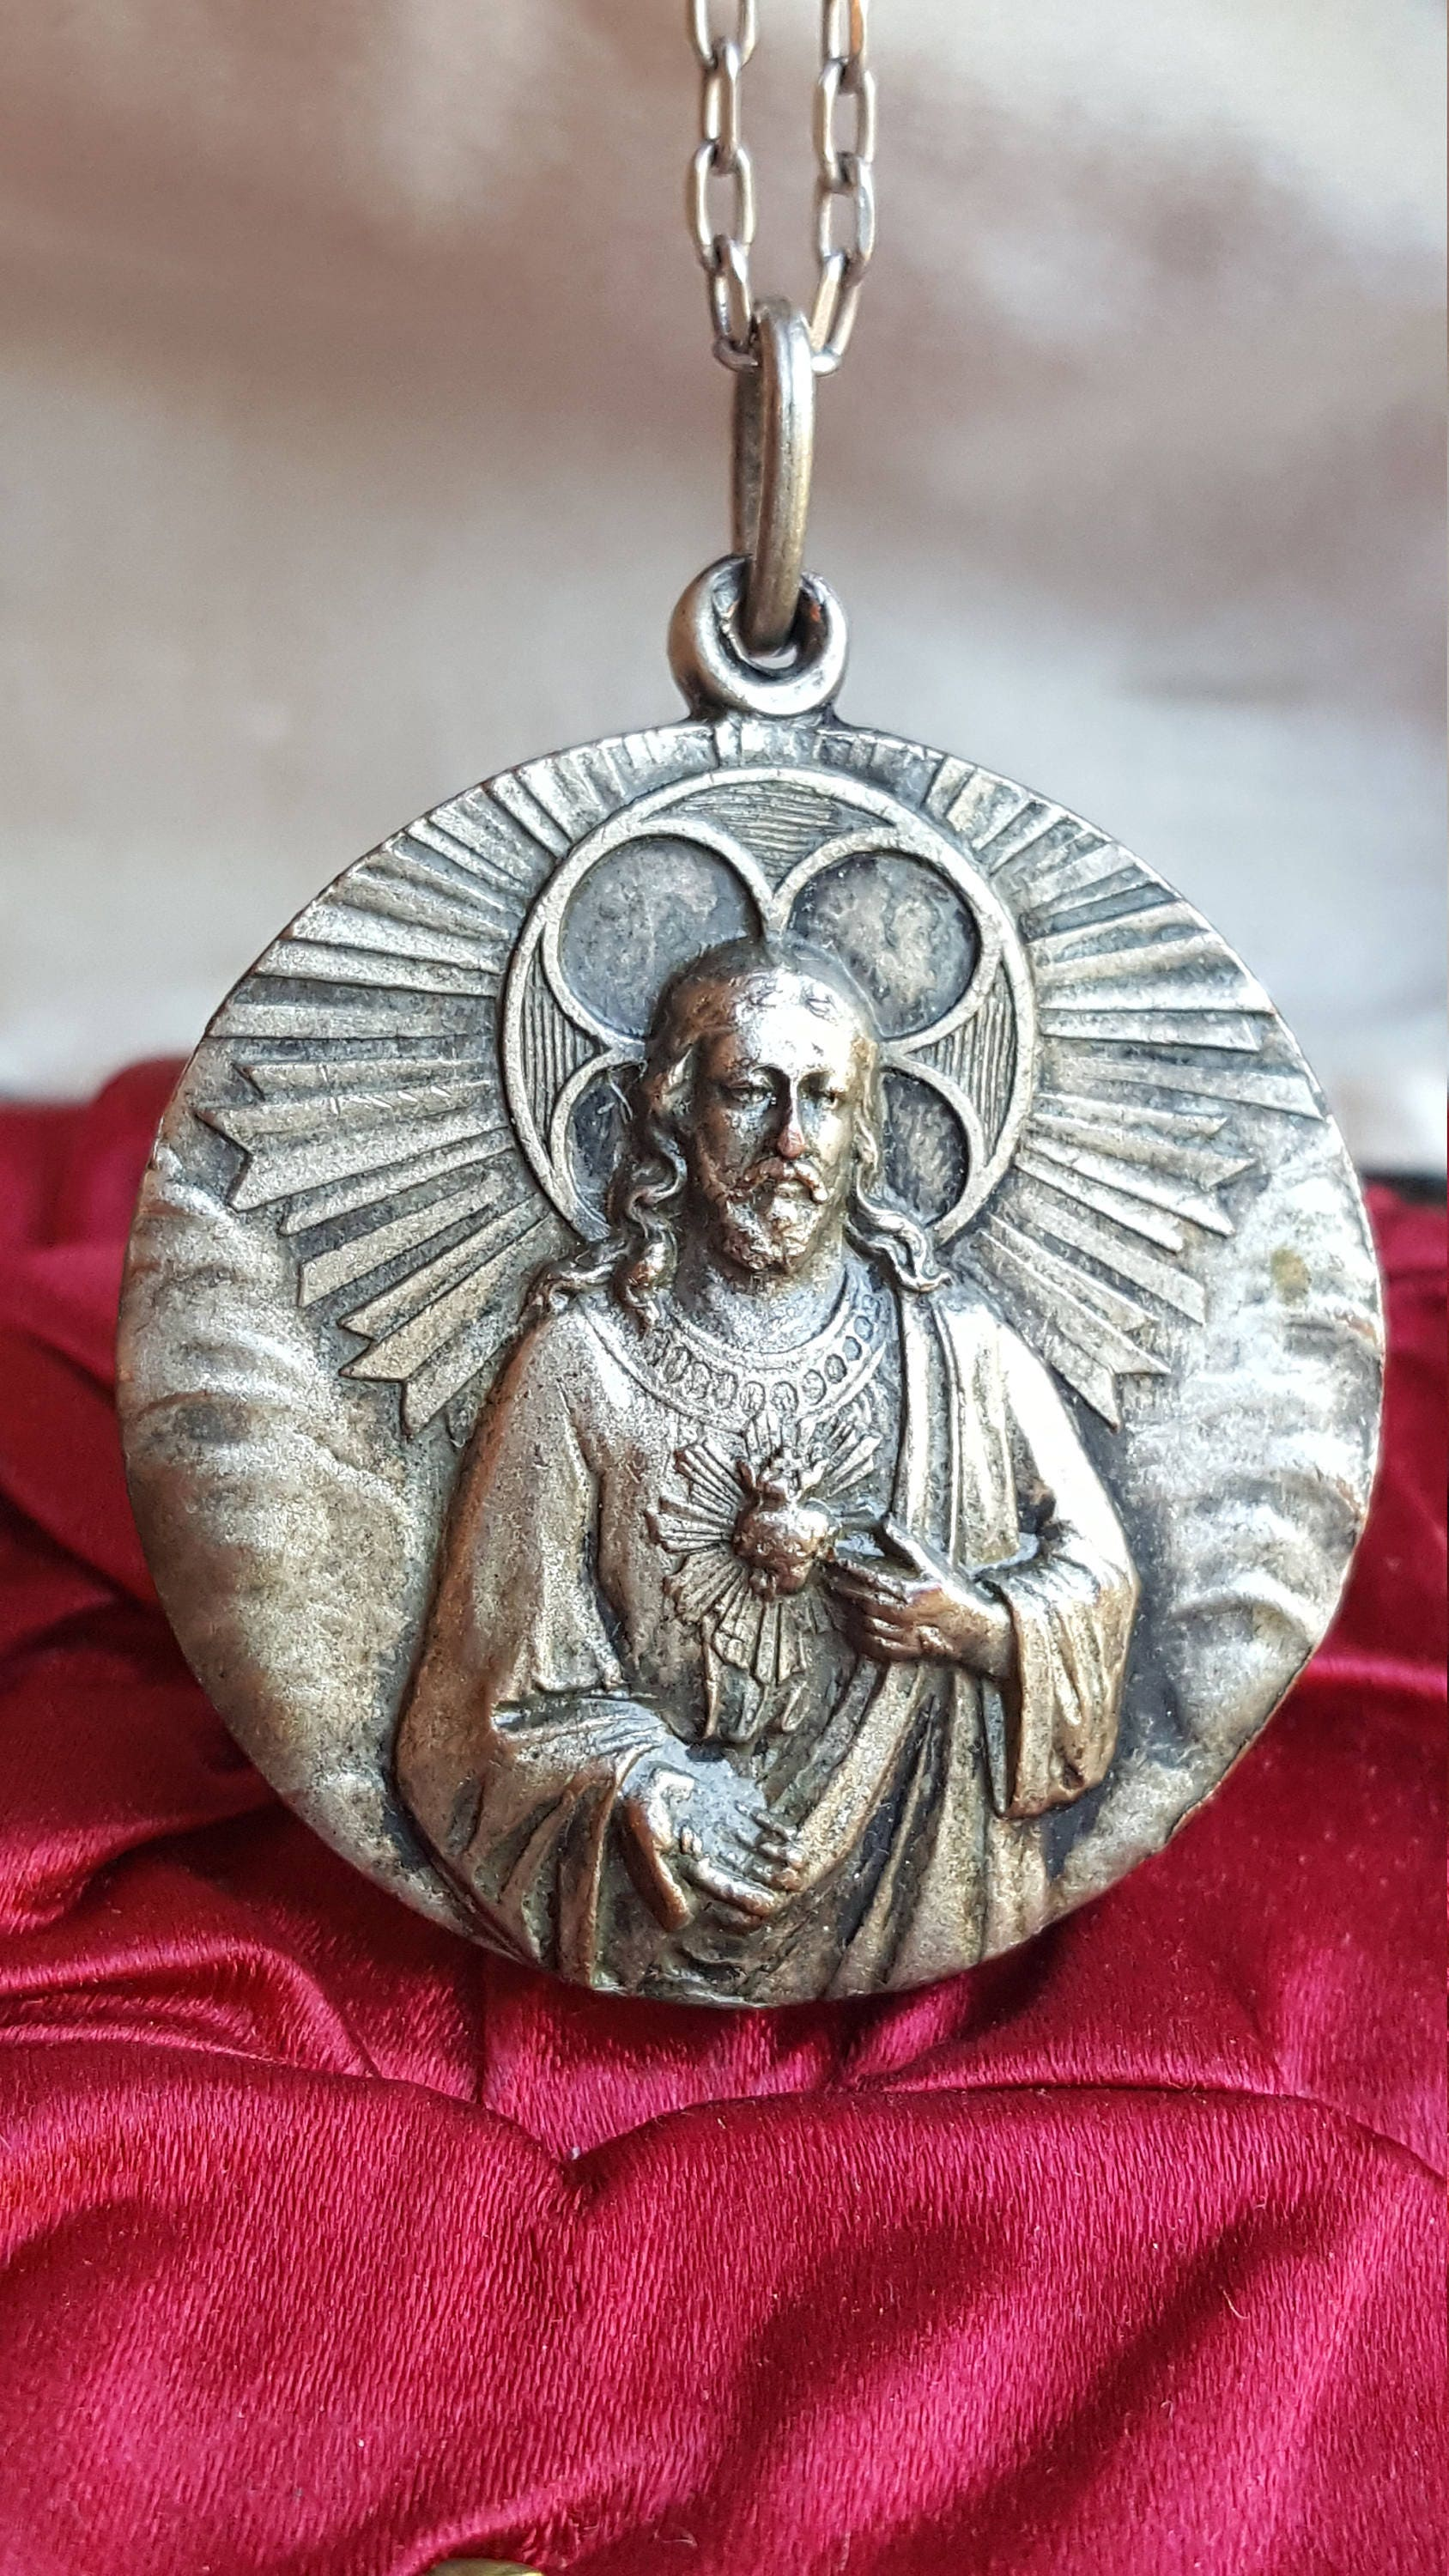 travel france of safety patron look original christopher st purchased for the saint from i nouveau so during beautiful safe many in people medallion collector to art driving catholic medal